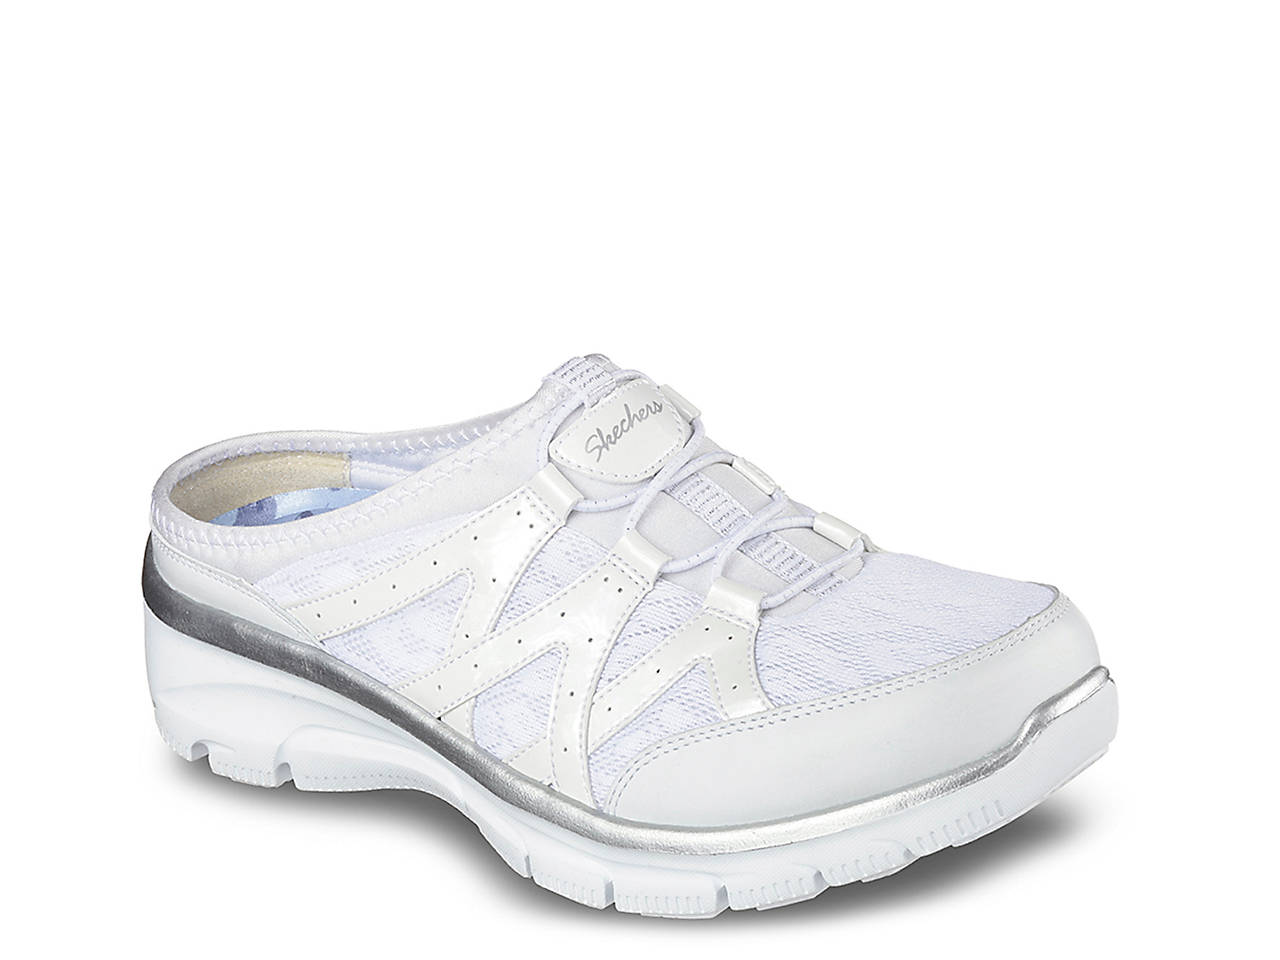 Skechers Relaxed Fit Easy Going Repute Slip-On Sneaker Women s Shoes ... ce900a192